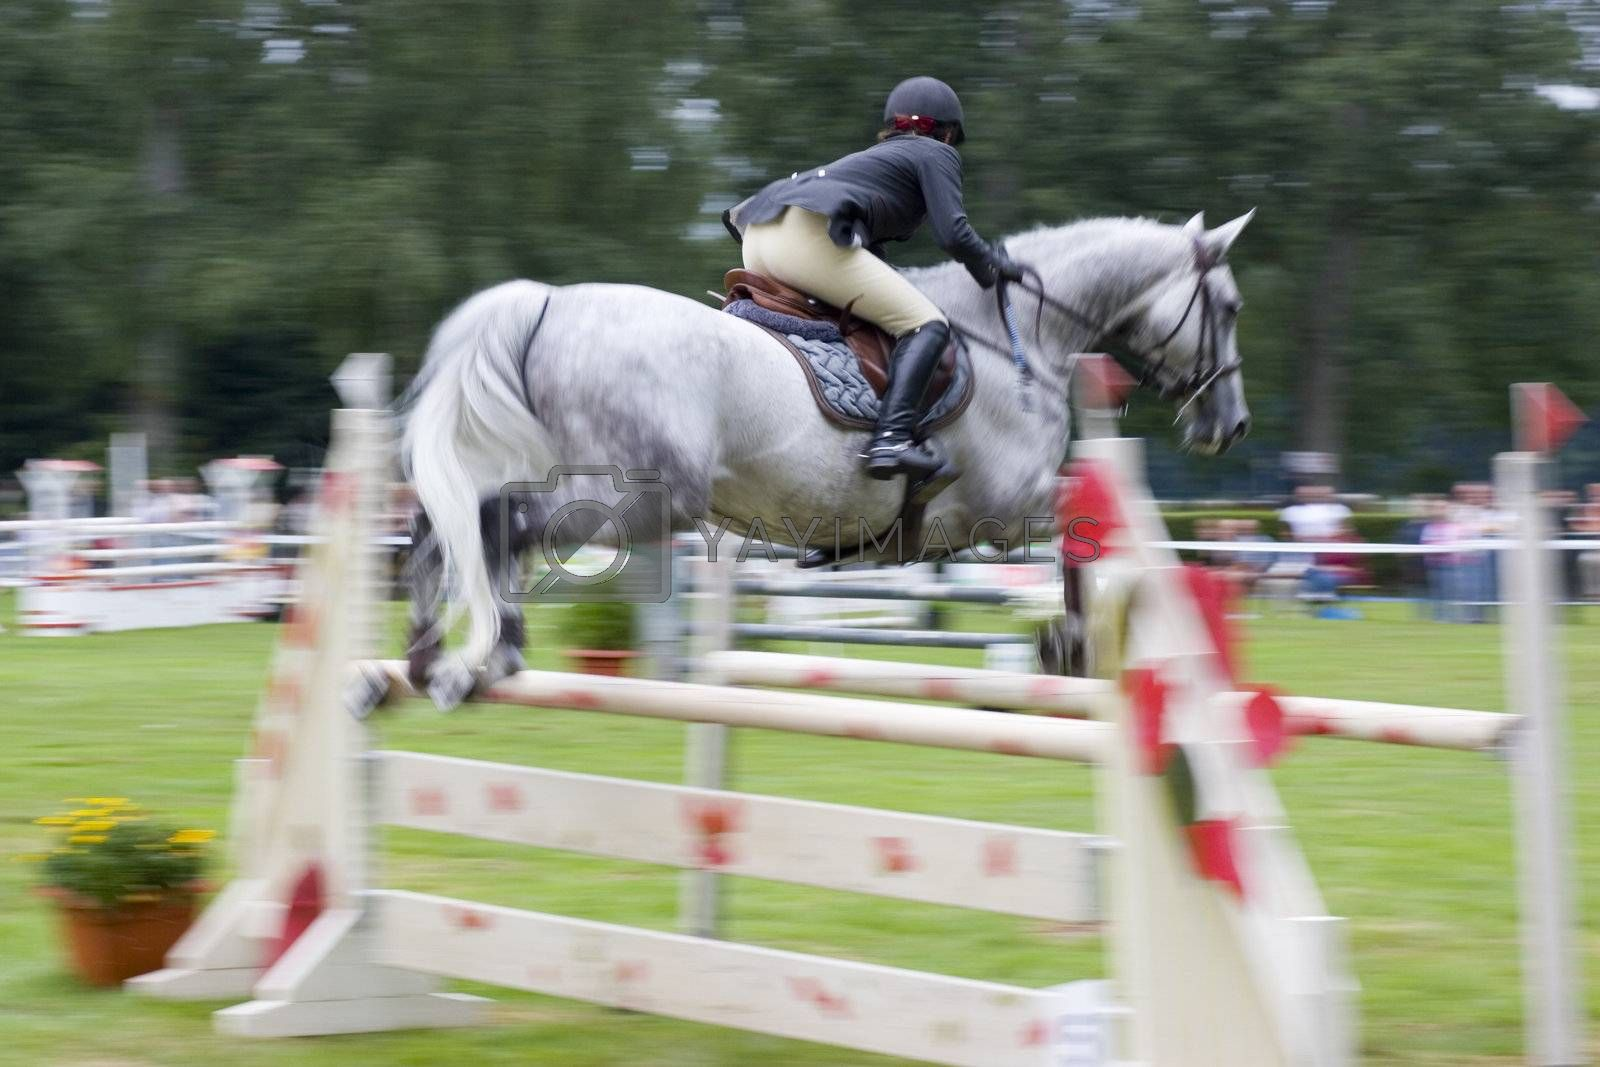 Jumping horse over an obstacle at a competition. Motion blurred.